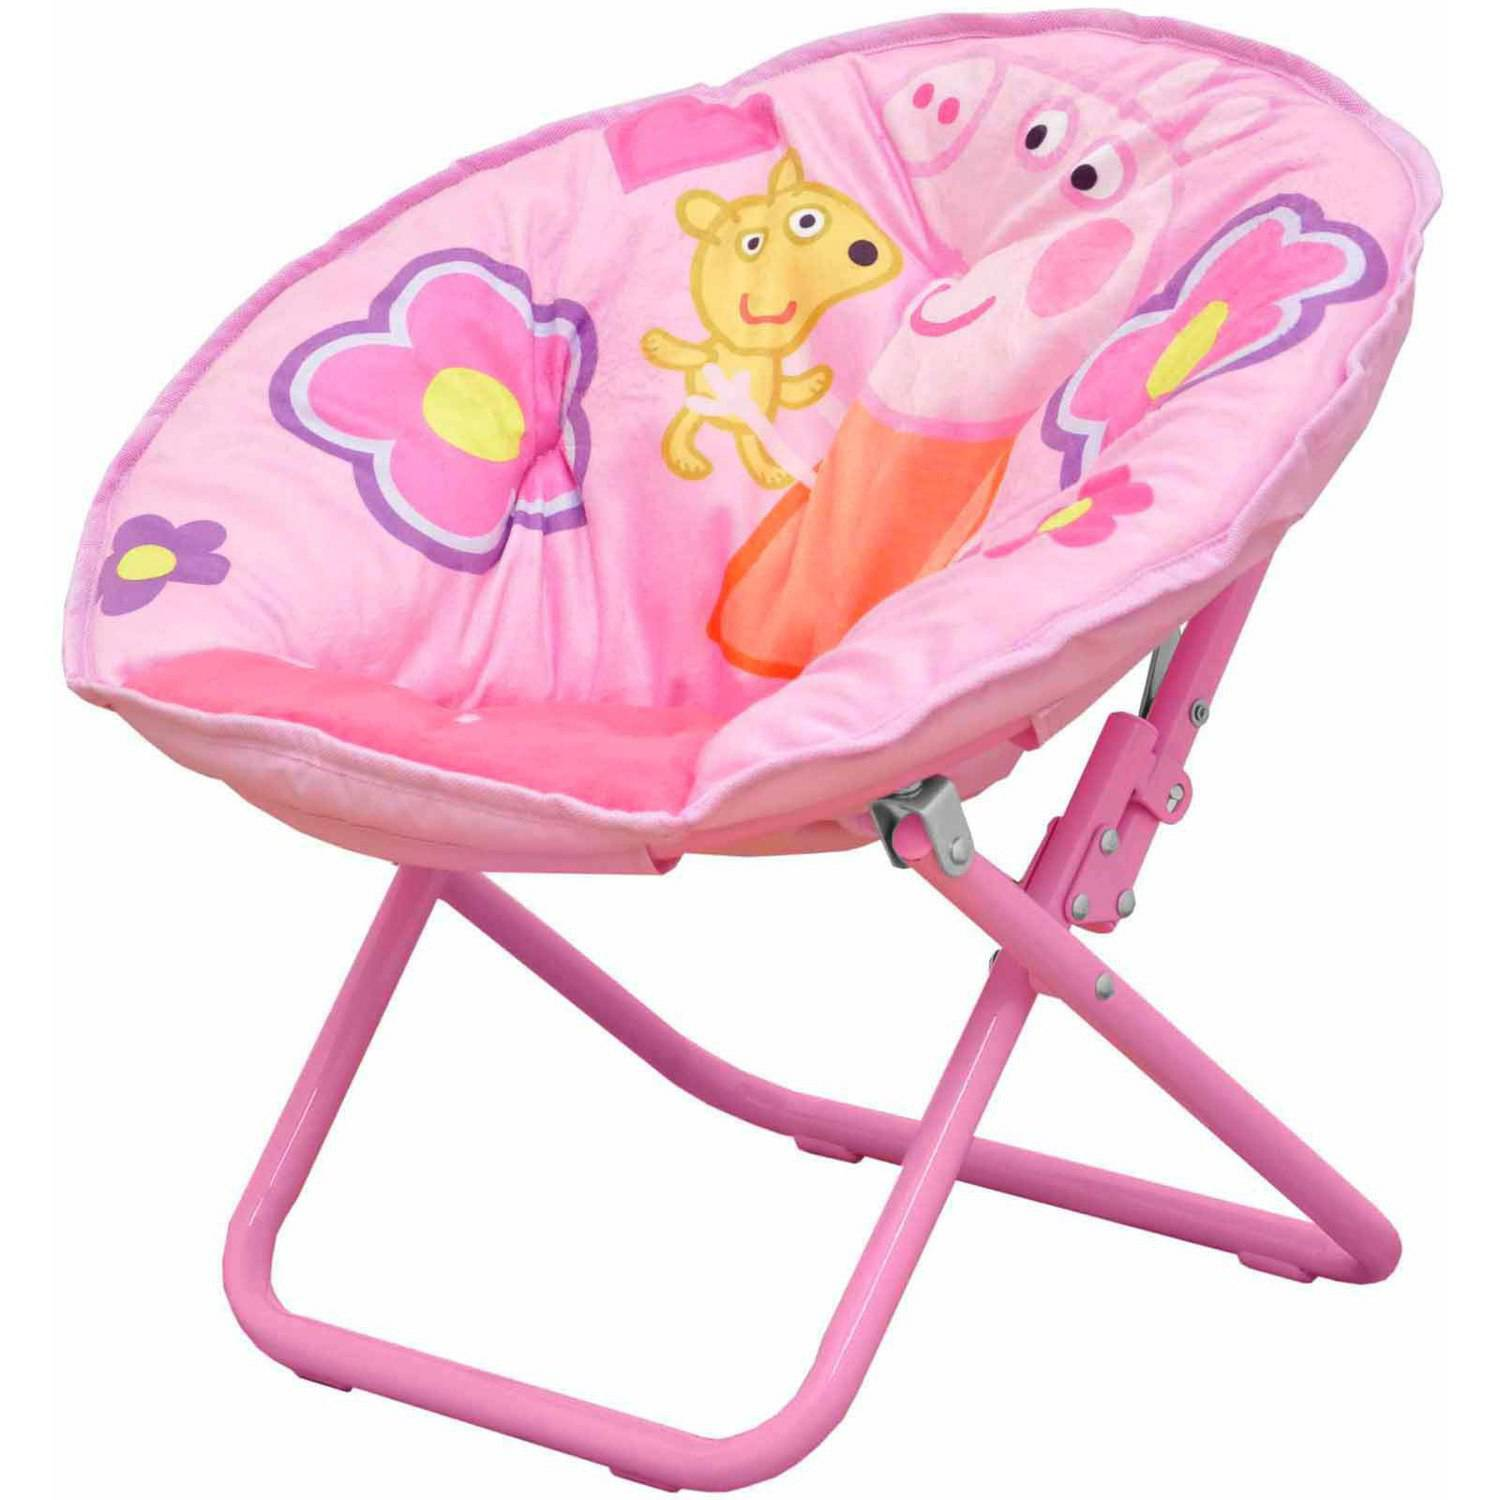 Peppa Pig Mini Saucer Chair